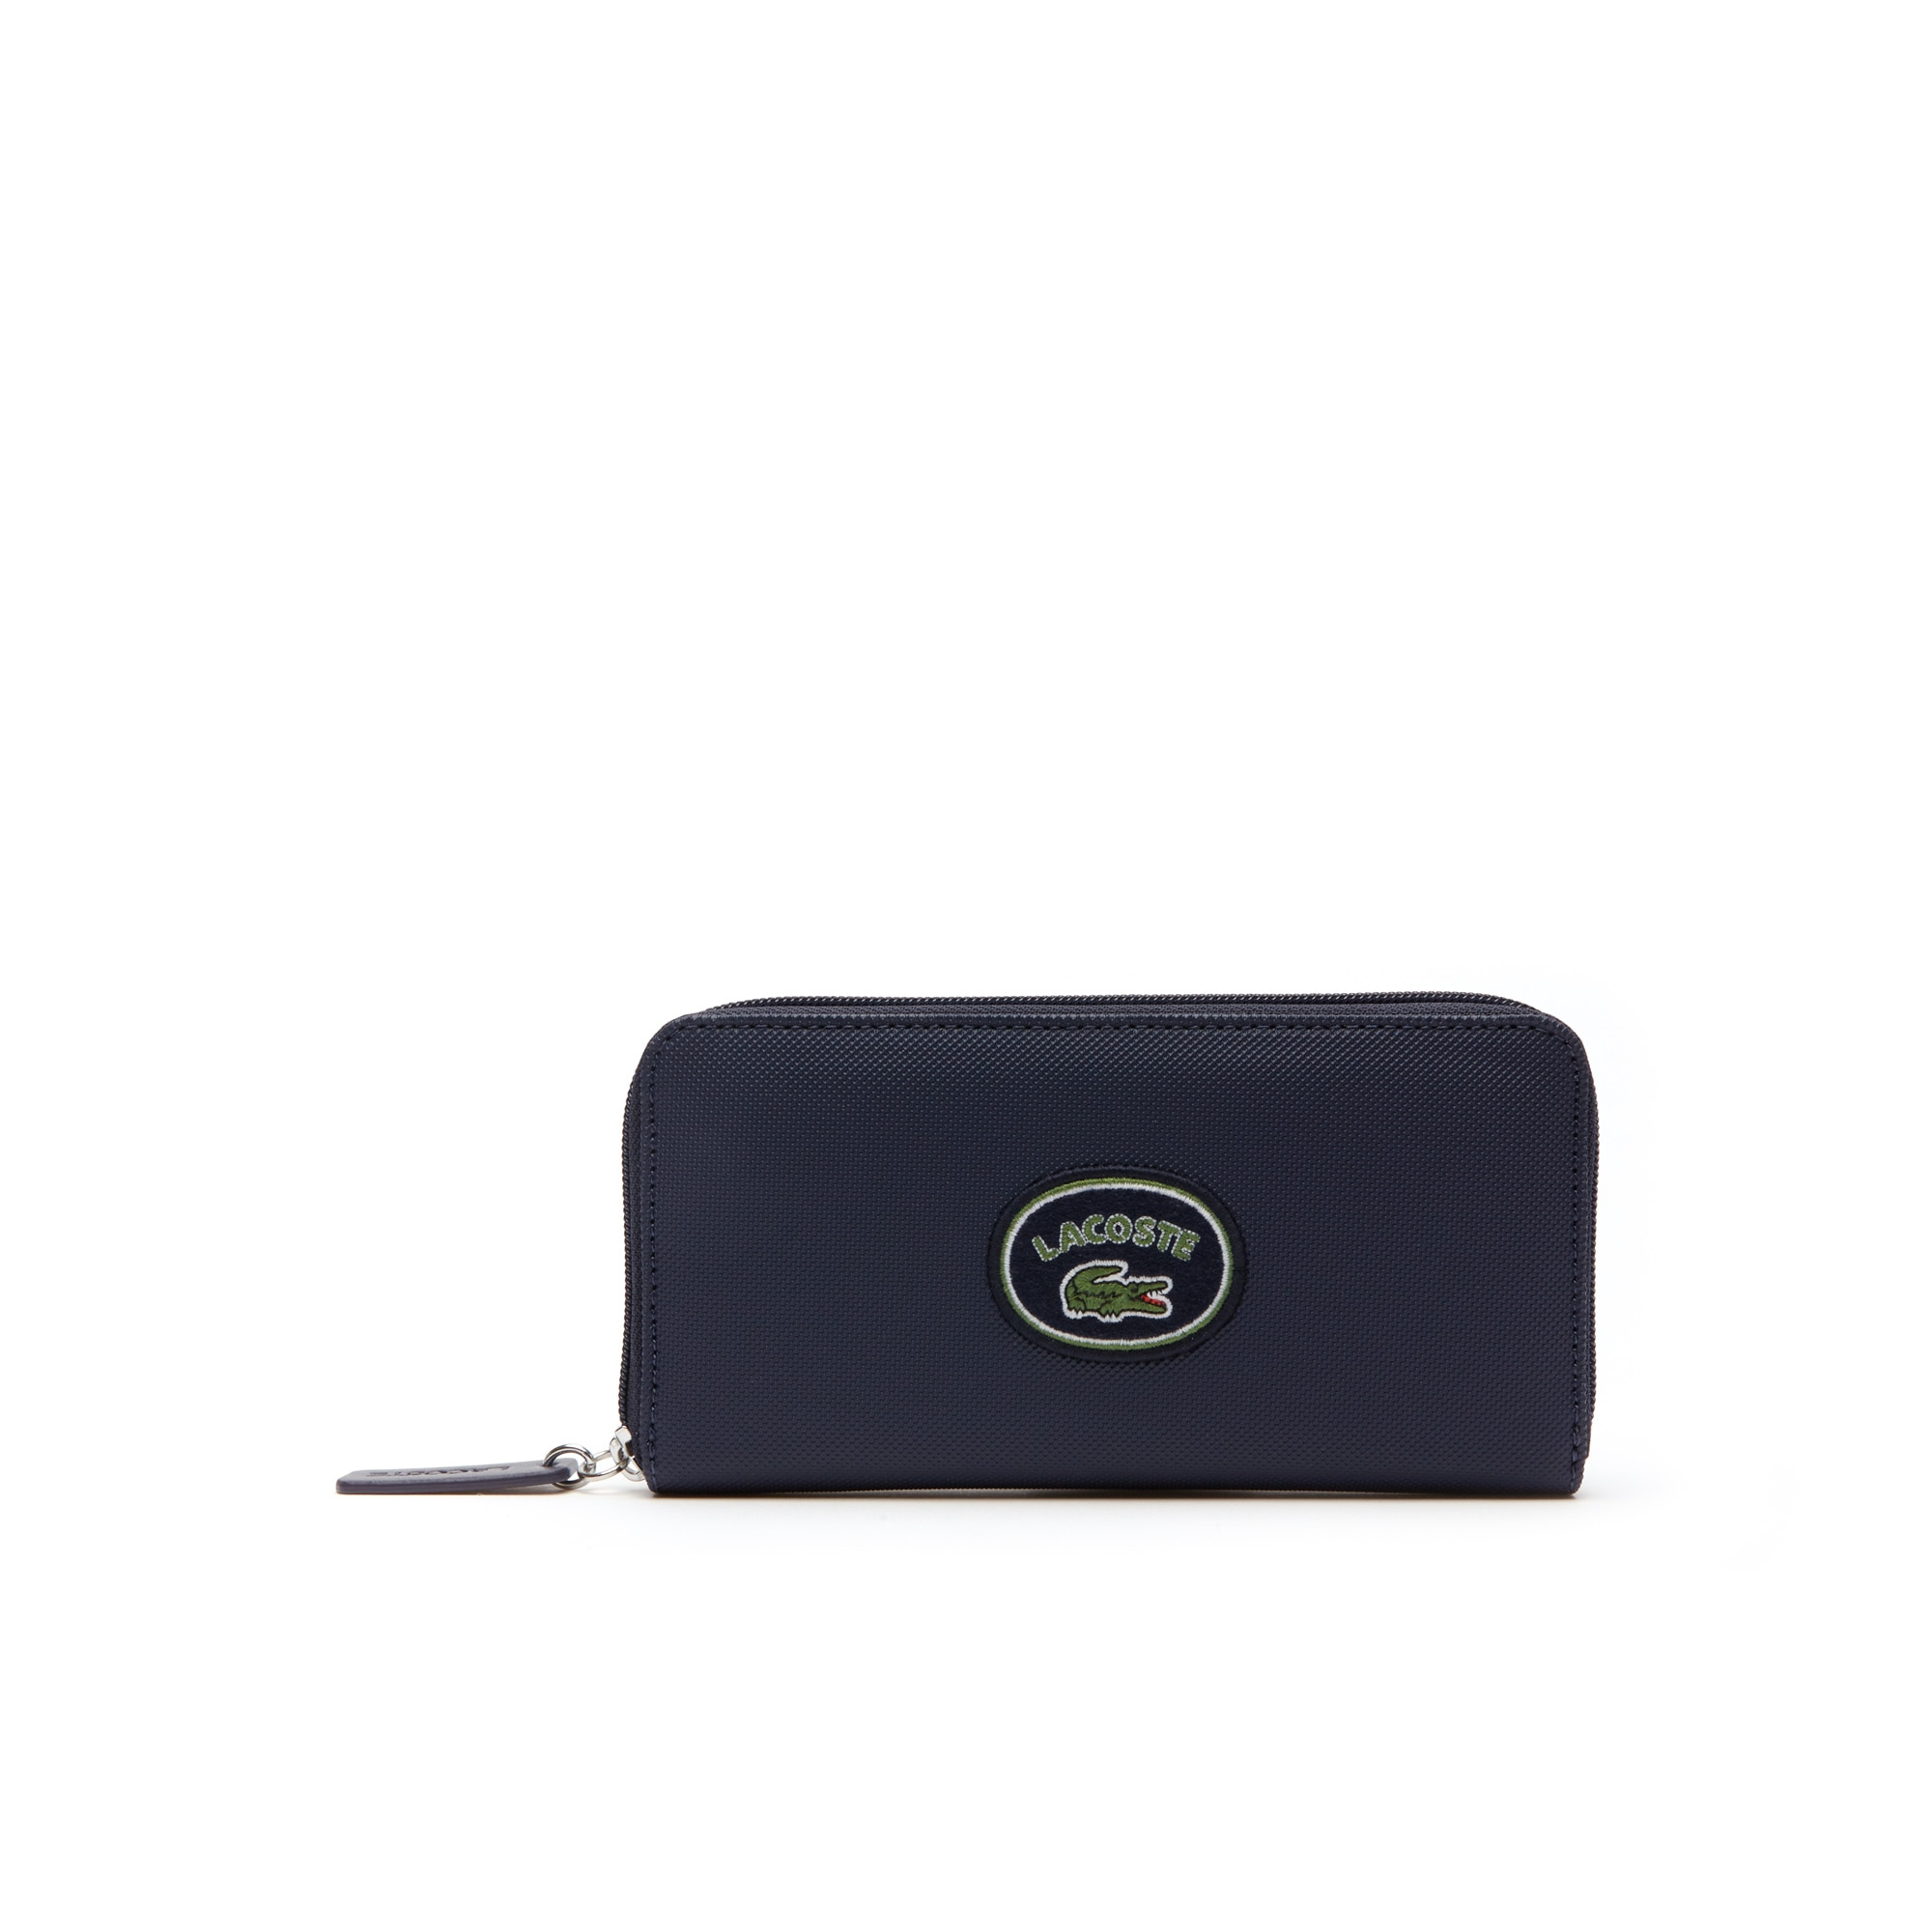 Women's L.12.12 Concept Lacoste Badge Petit Piqué Zip Wallet